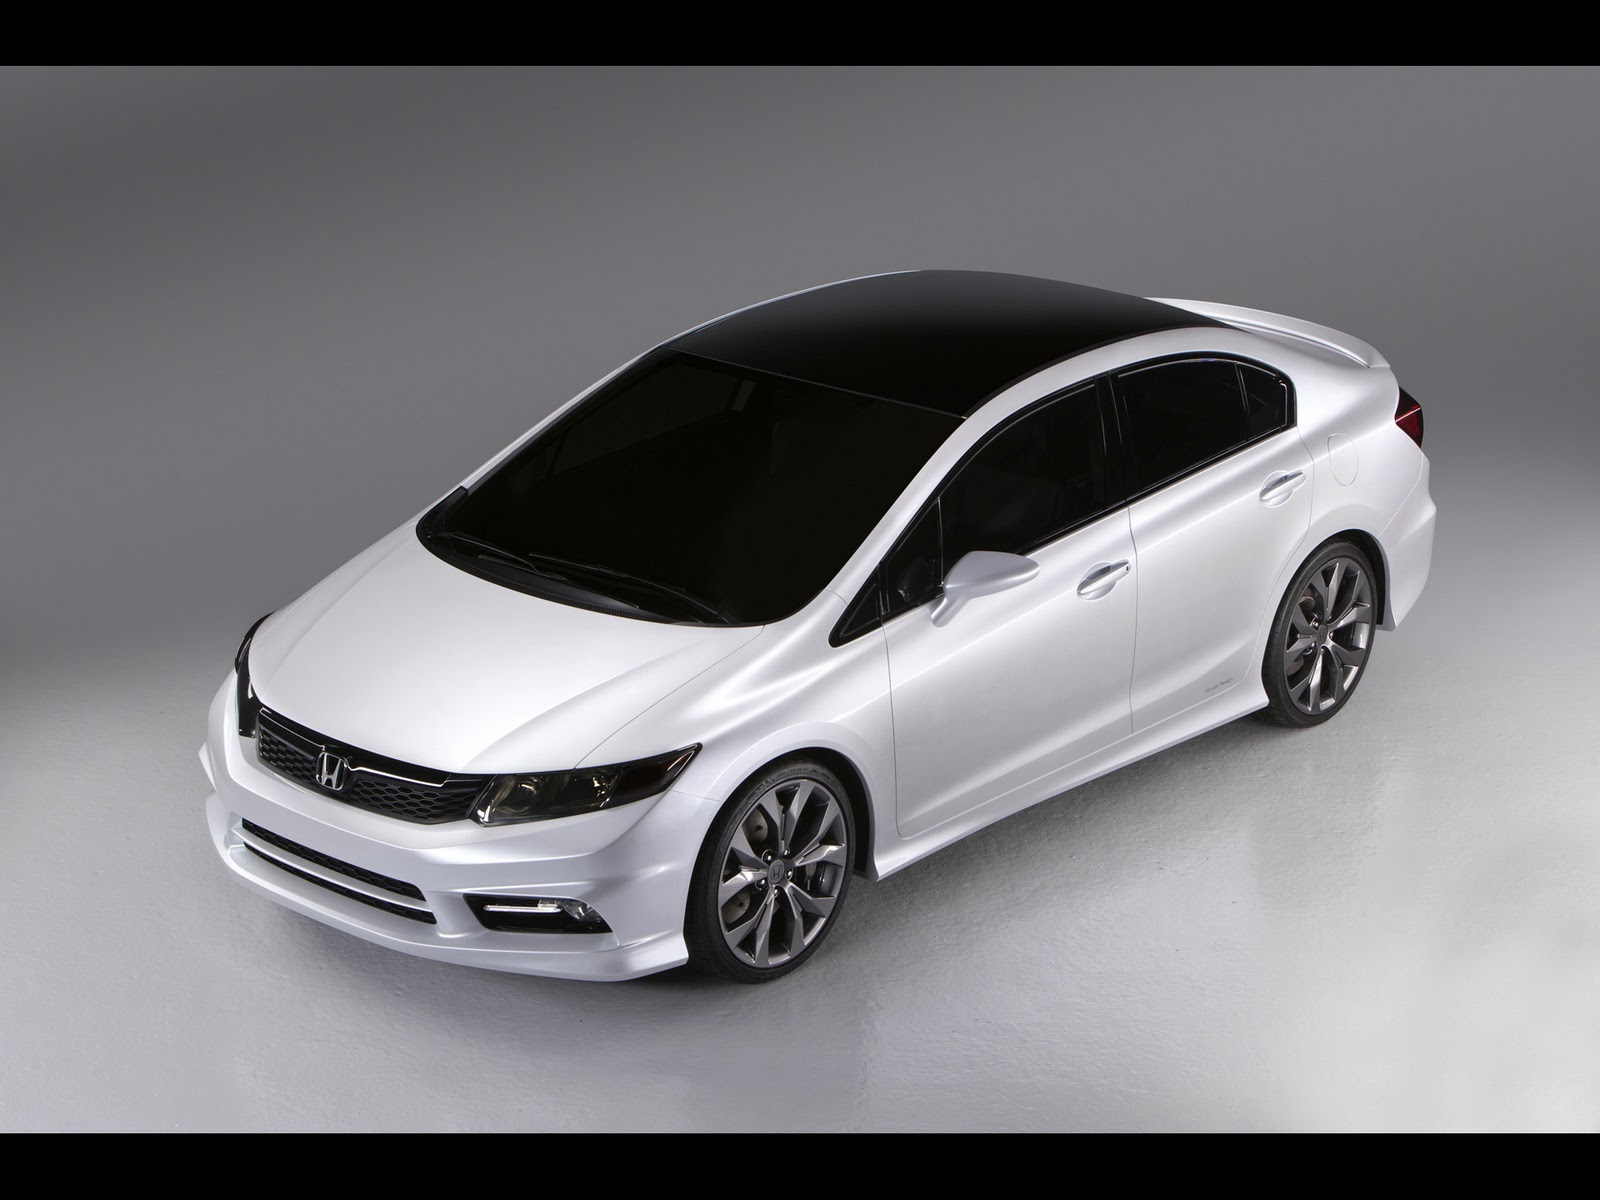 Cars Hd Wallpapers 2011 Honda Civic Concept